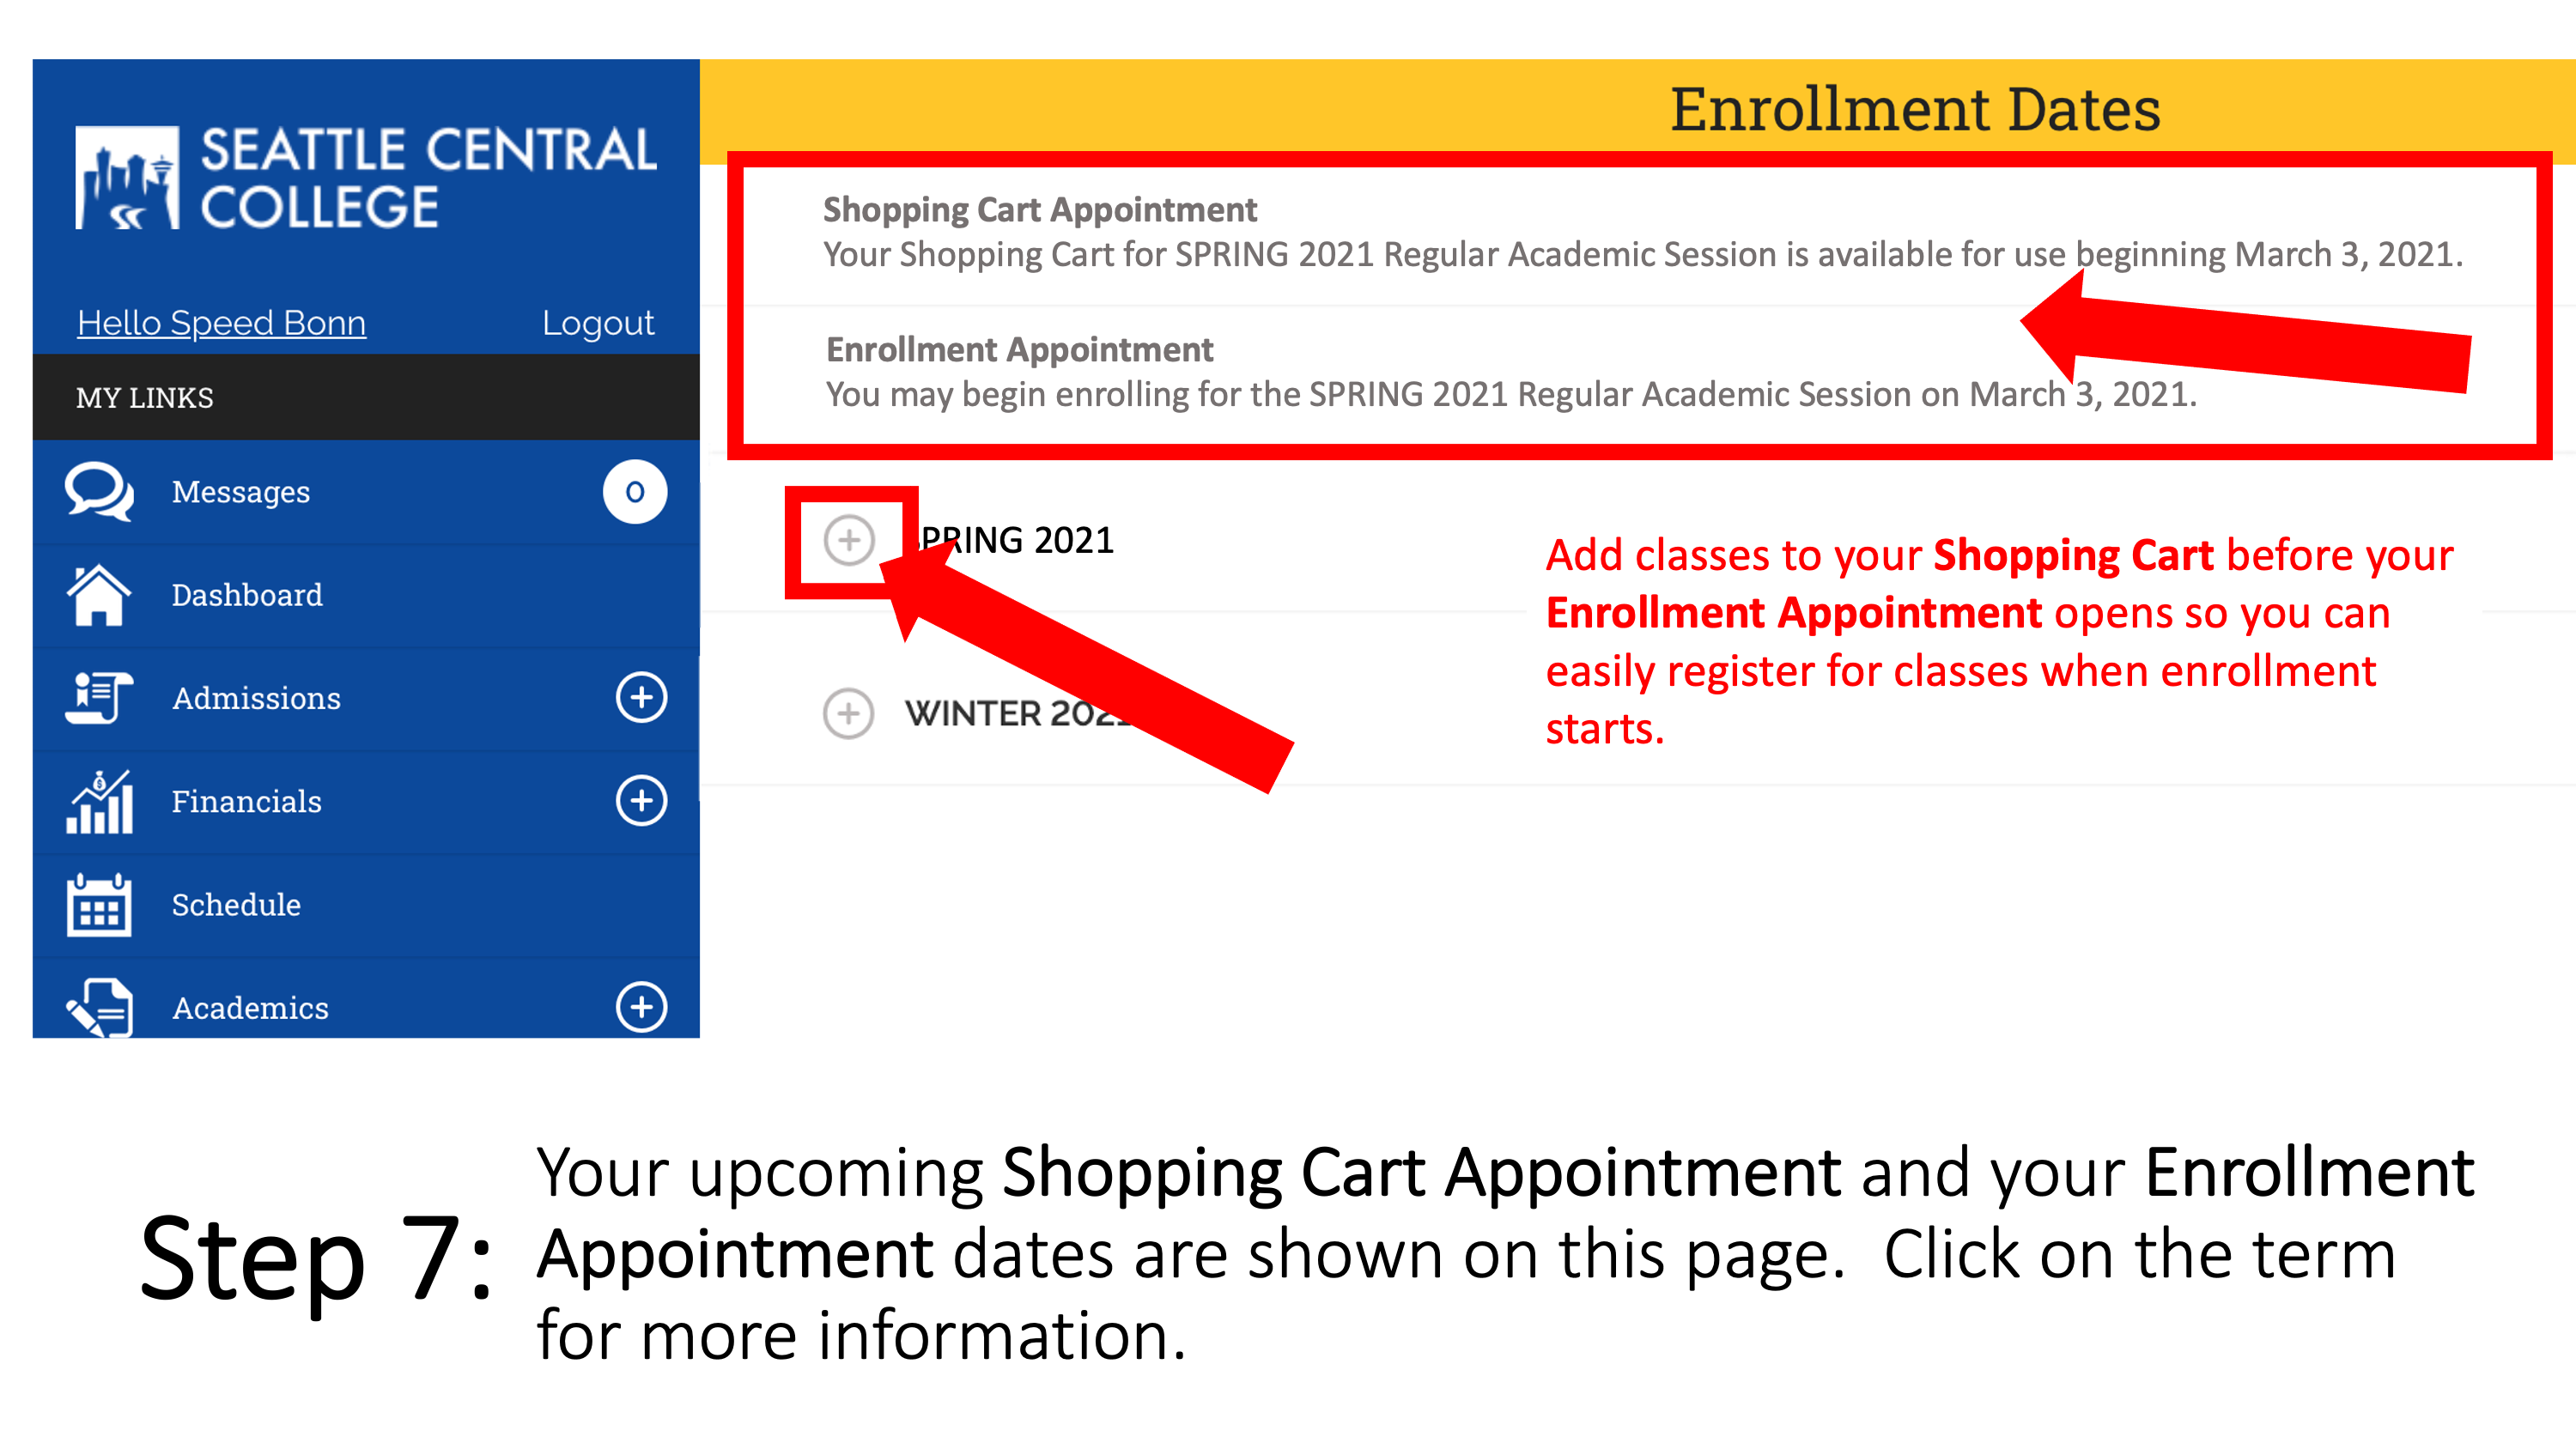 Your upcoming Shopping Cart Appointment and your Enrollment Appointment dates are shown on this page.  Click on the term for more information. Add classes to your Shopping Cart before your Enrollment Appointment opens so you can easily register for classes when enrollment starts.